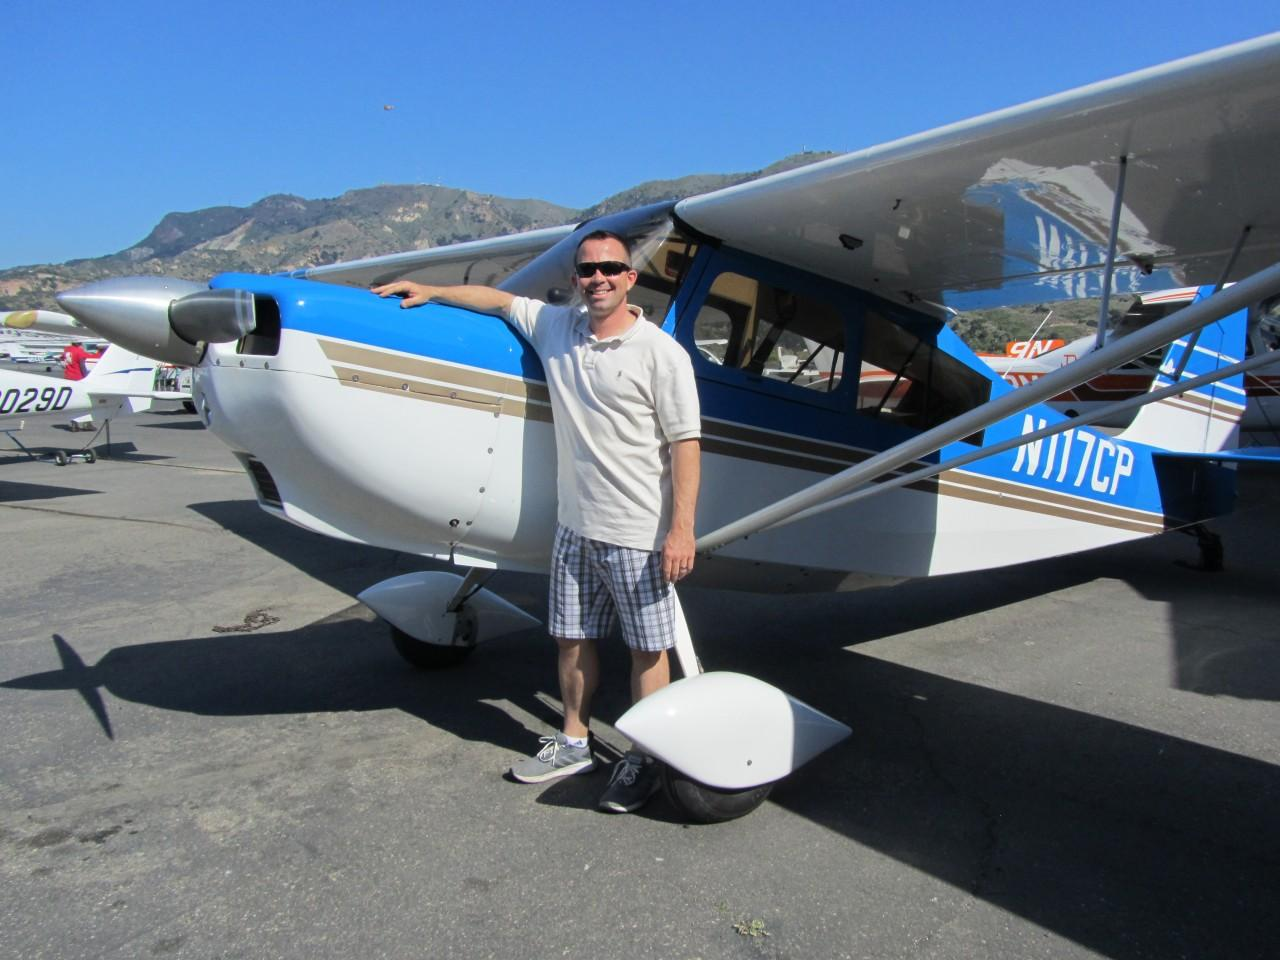 Tailwheel Endorsement - Nick Fishbough